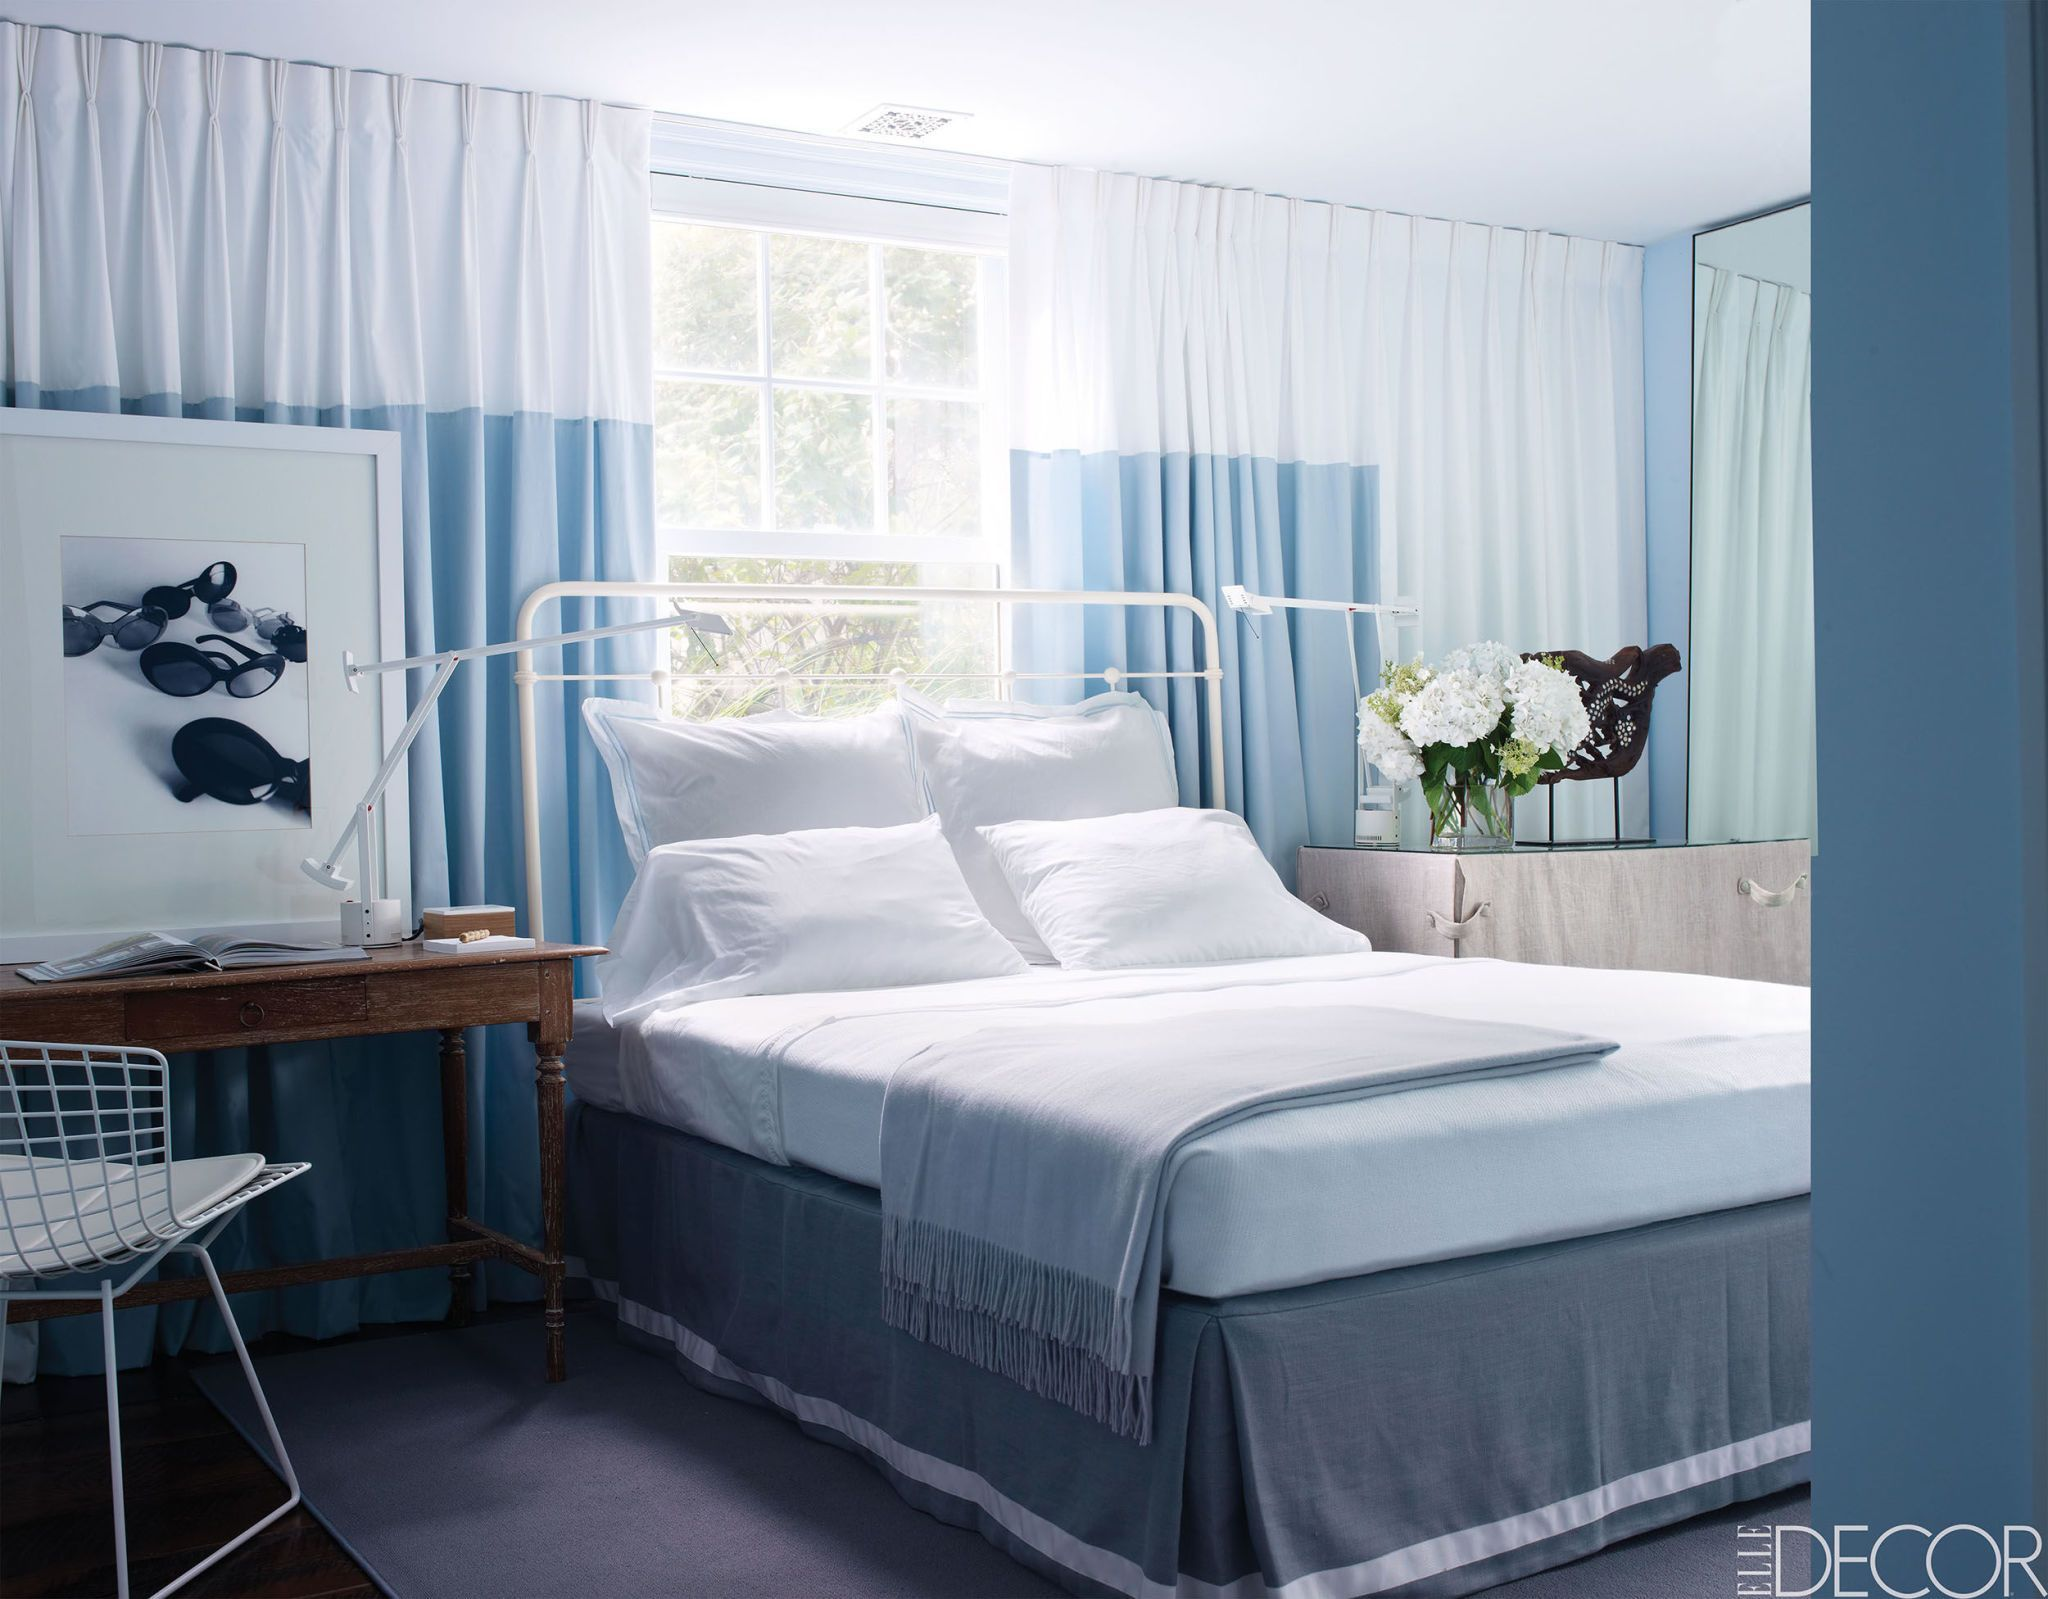 Interior Design Ideas & Home Decorating Inspiration: Room ... on Ideas For Small Rooms  id=87455